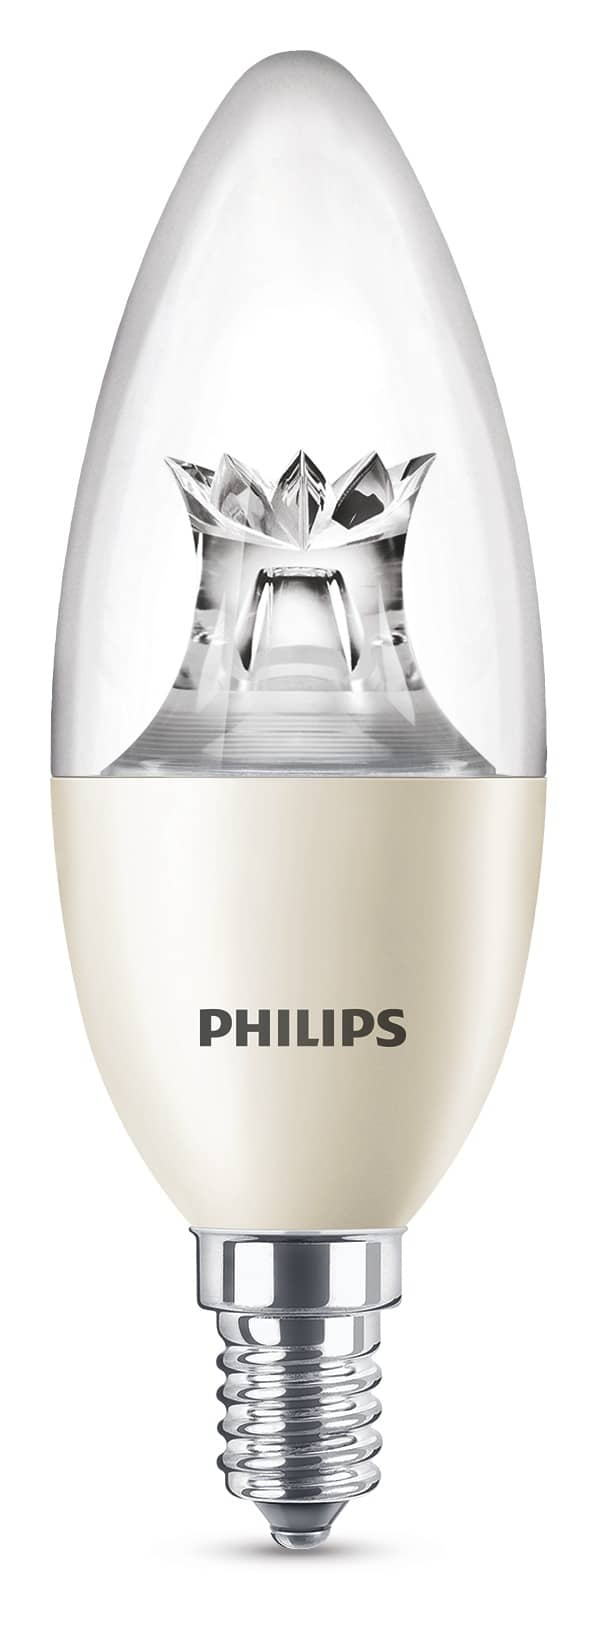 philips e14 led kerze warmglow 8w 806lm warmweiss dimm klar. Black Bedroom Furniture Sets. Home Design Ideas